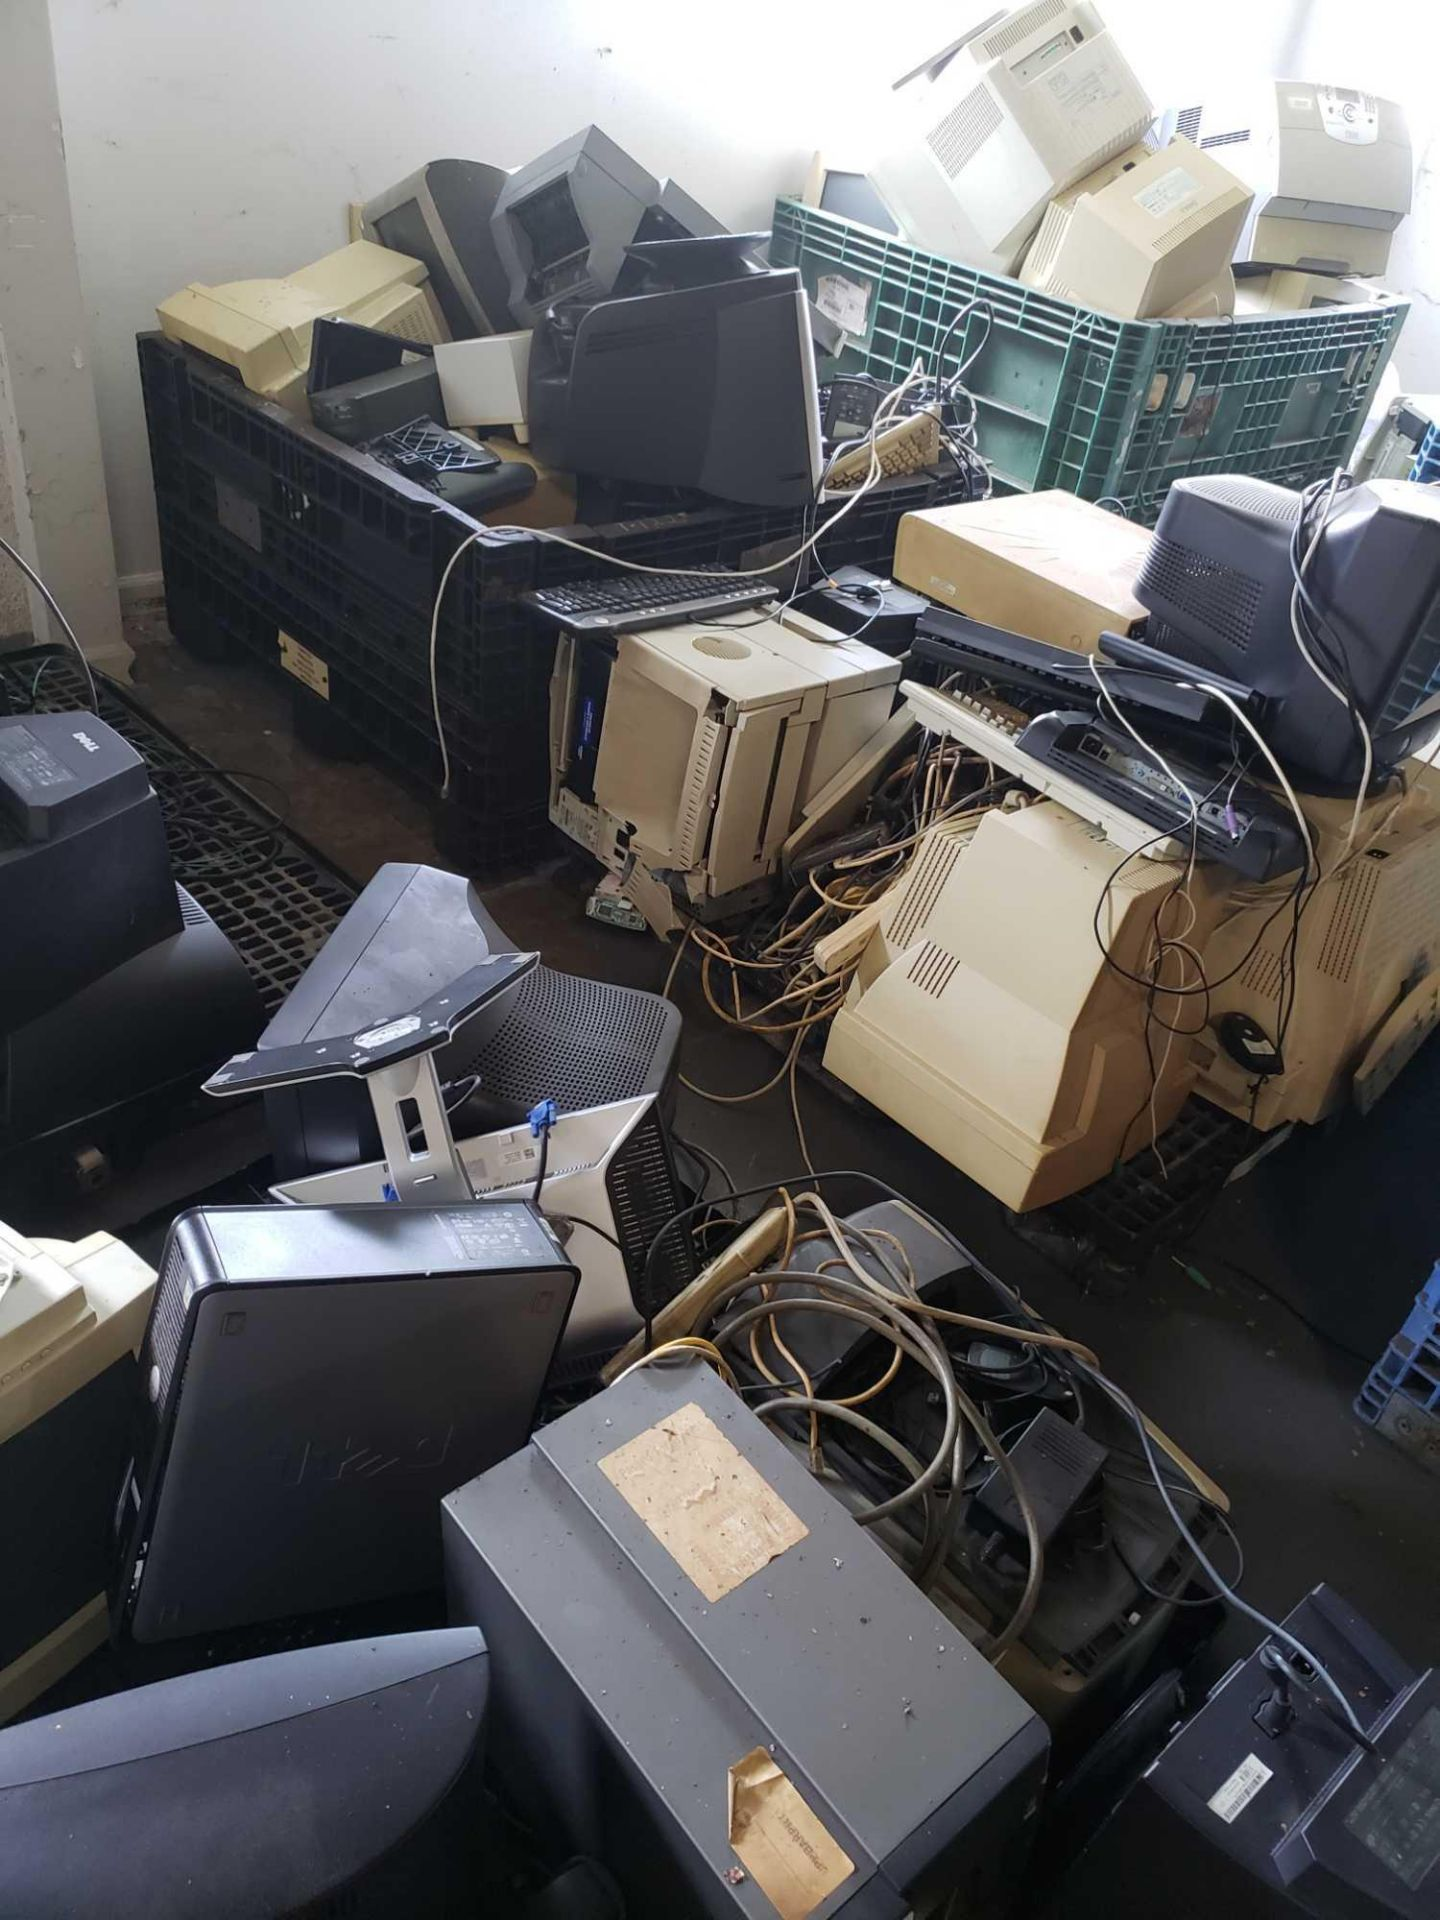 Lot 181 - Large Quantity of various computer monitors, towers, printers and more. Winner must take all.